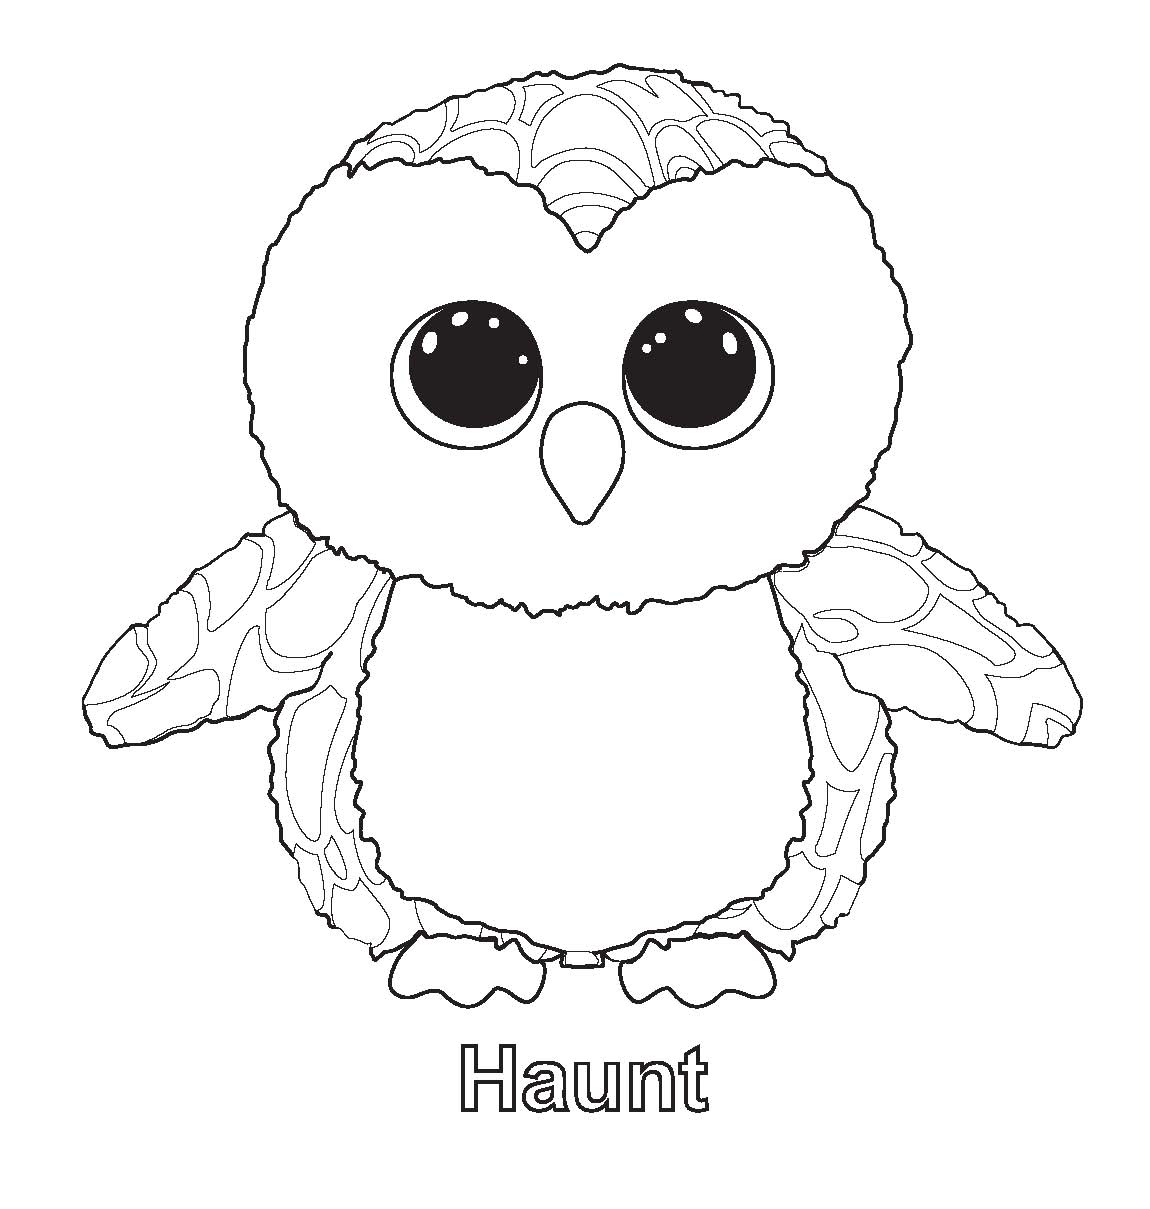 Coloring Pages : Ty Beanie Boo Coloring Book New Pages And Print For - Free Printable Beanie Boo Coloring Pages